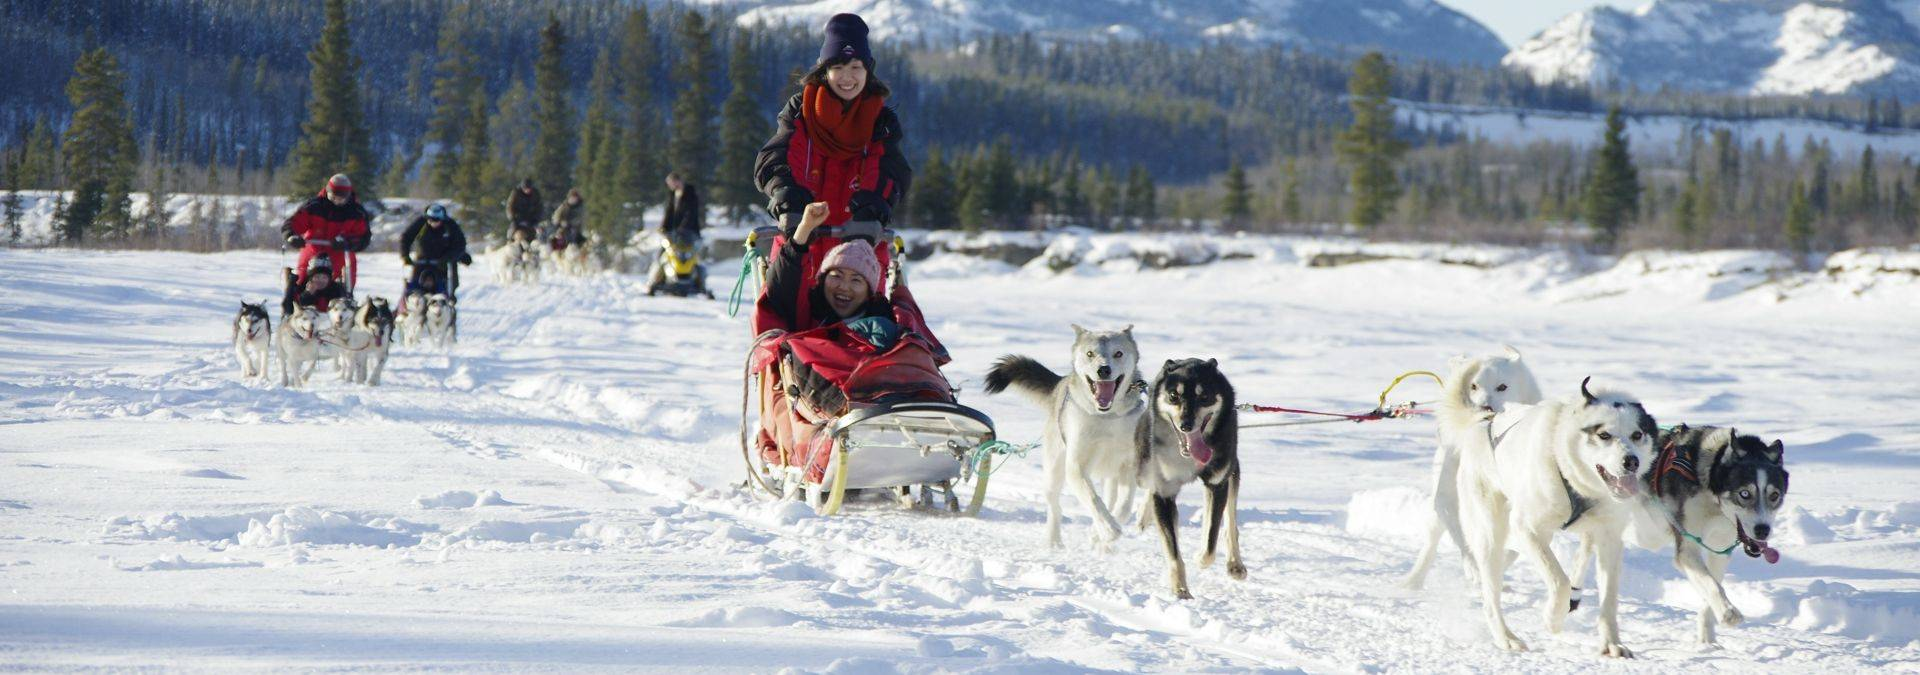 Dog Sledding 3 Credit Arctic Range Adventure Ltd